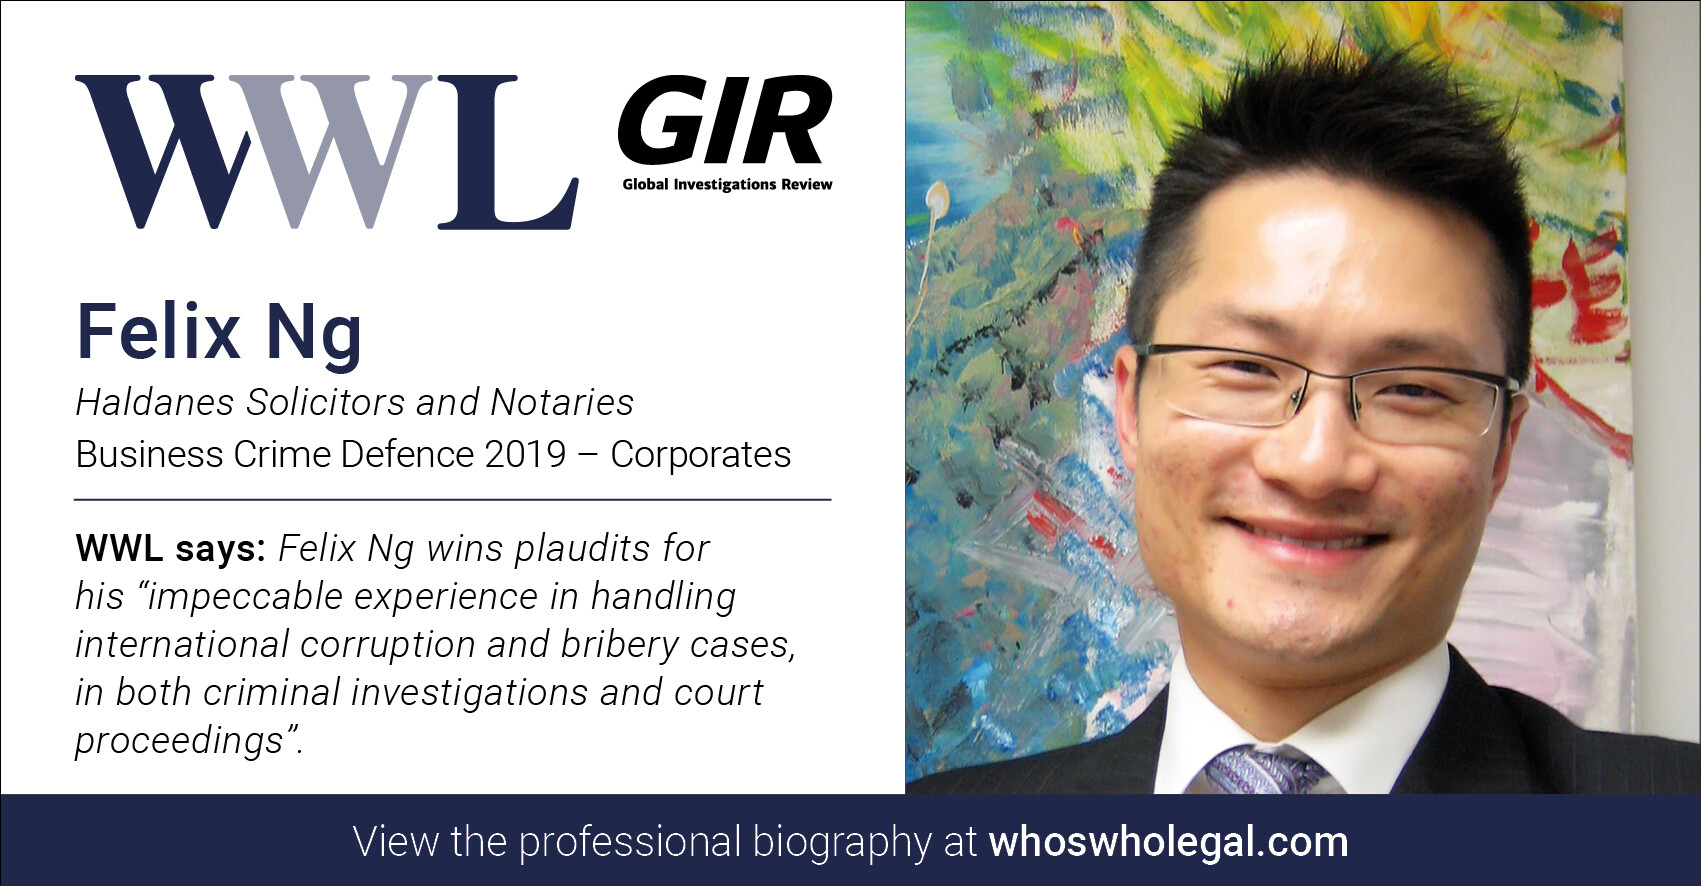 Felix Ng WWL 2019 1 - Haldanes recognised in Who's Who Legal Business Crime Defence 2019